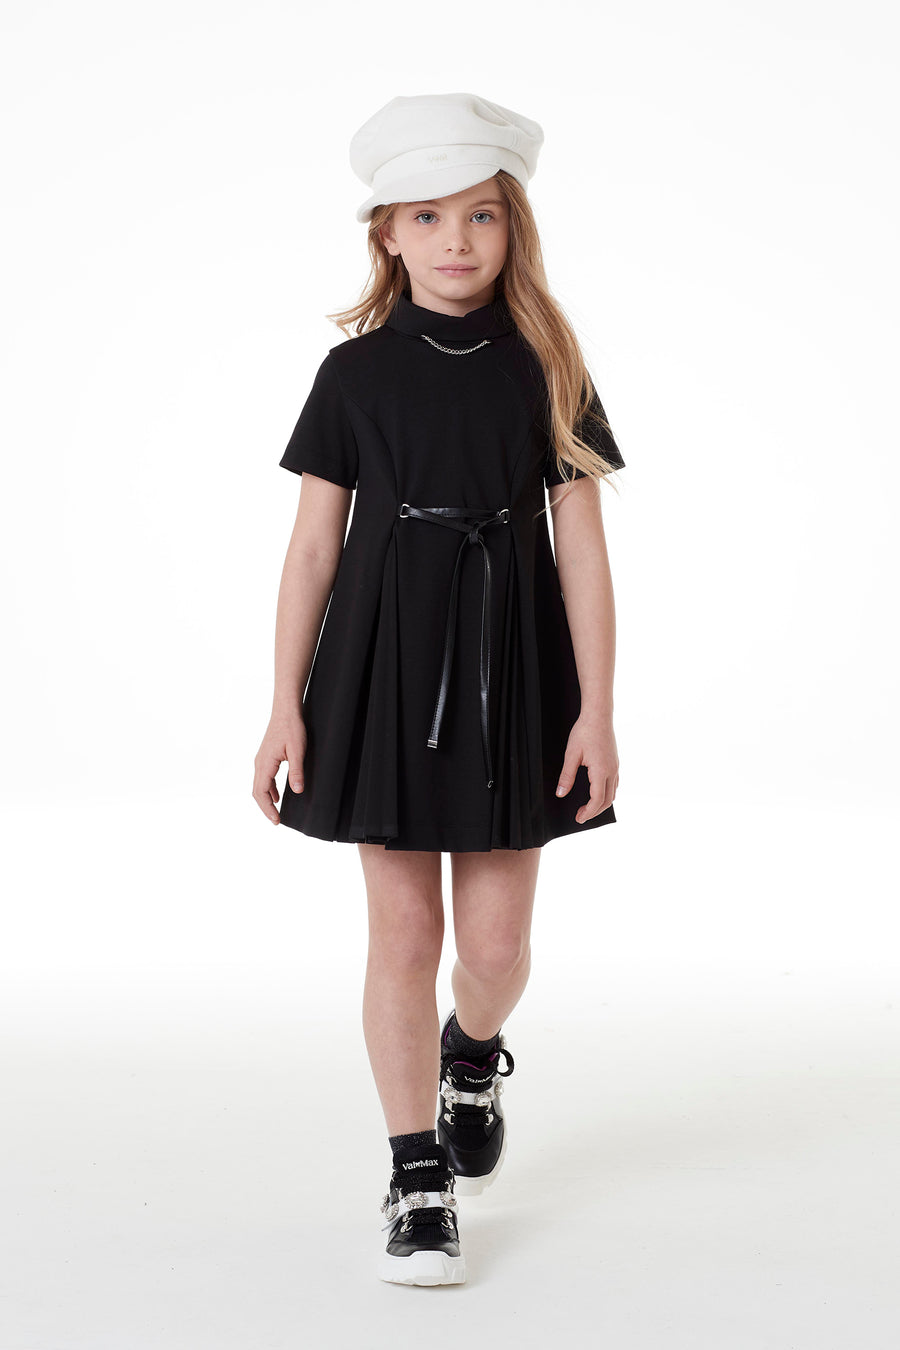 Black Collar Dress by Val Max